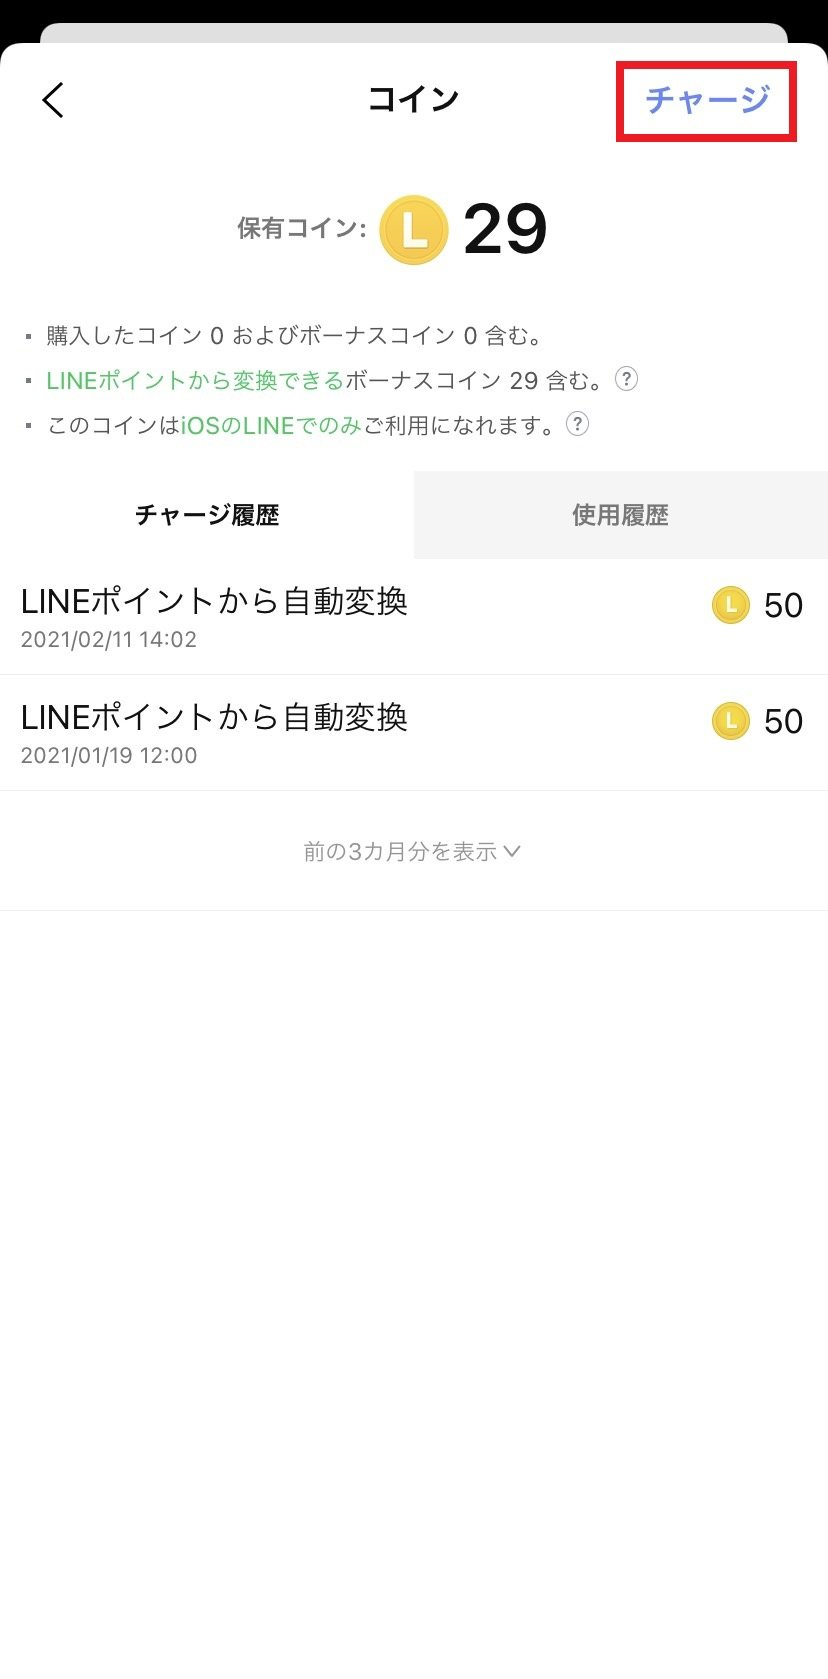 purchase-linecoin_03.jpg